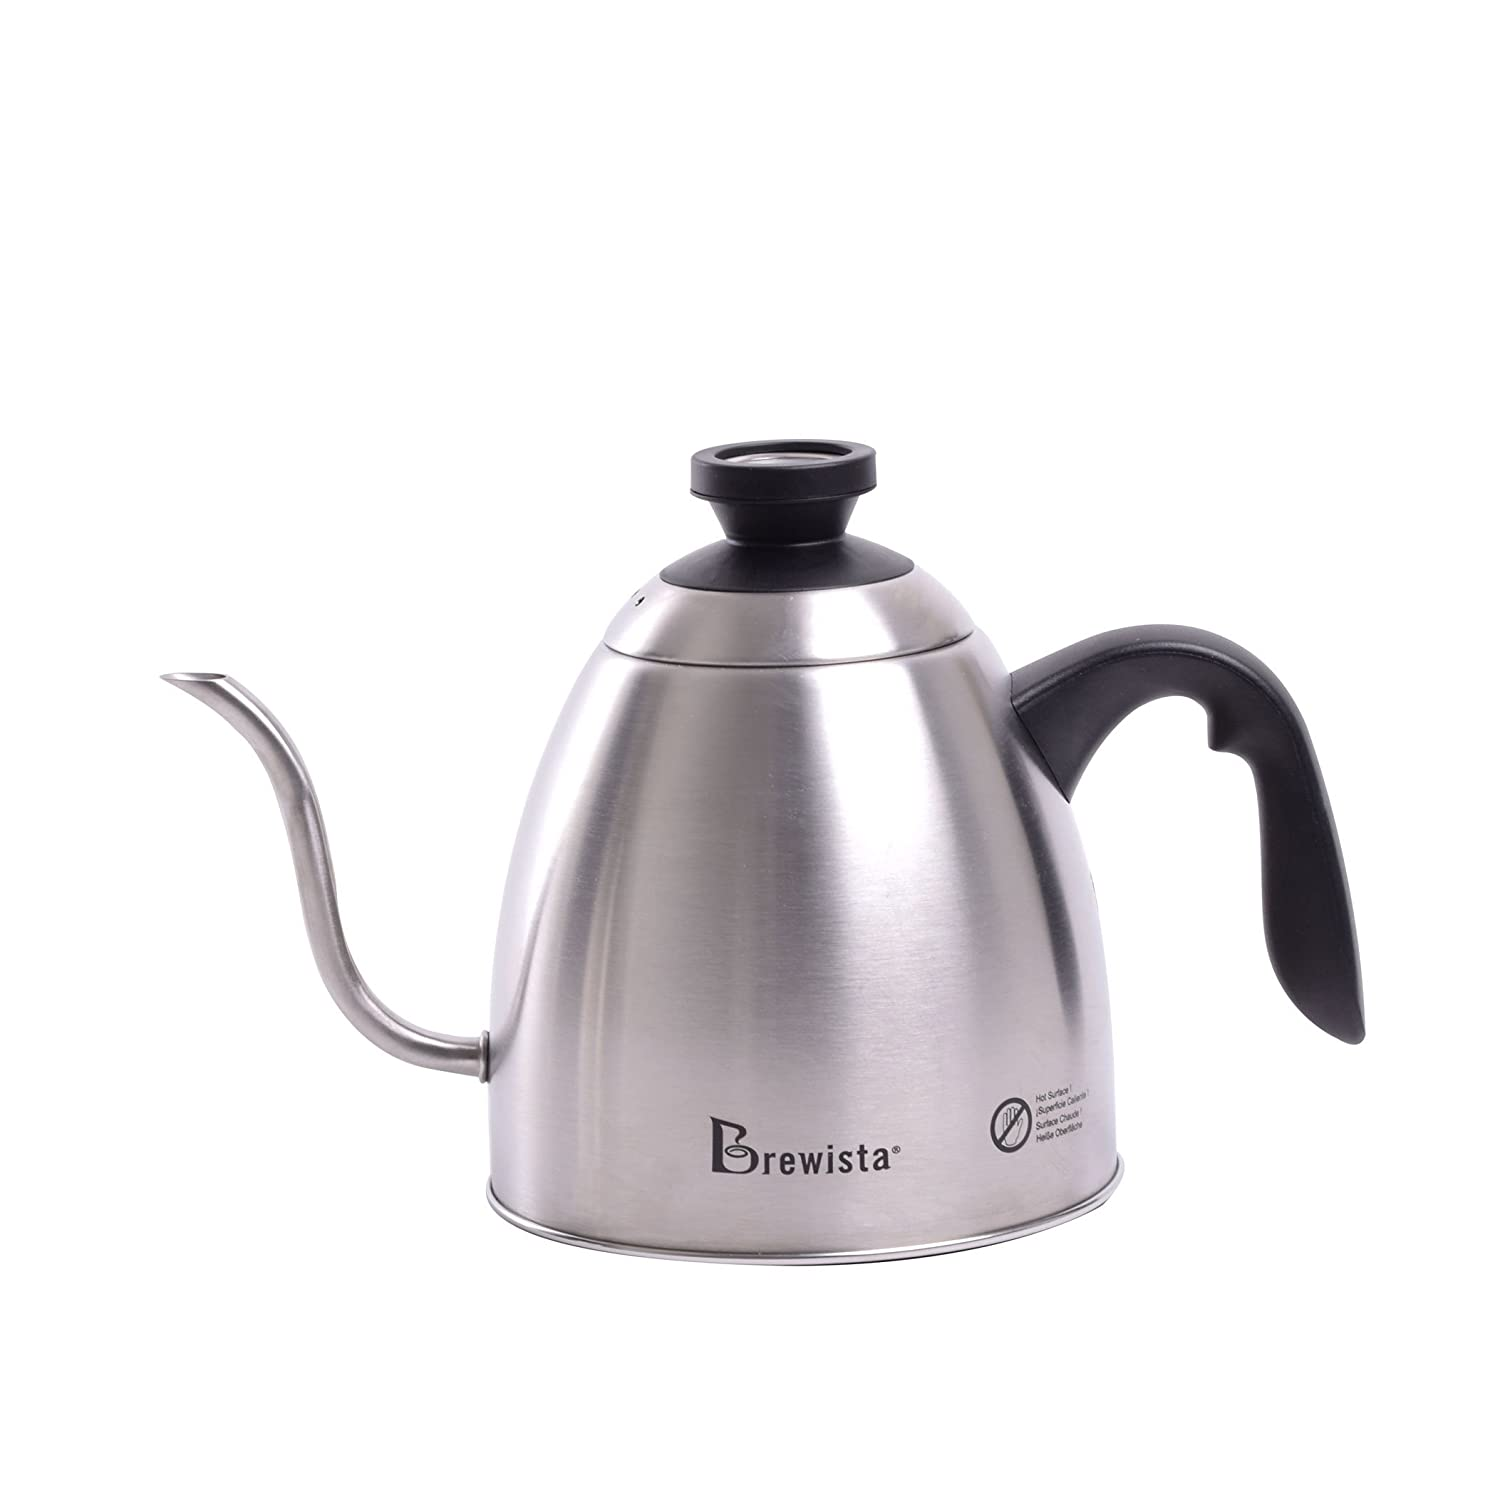 Brewista SmartPour Stovetop Kettle, Stainless Steel (BKS12S01G2TG)